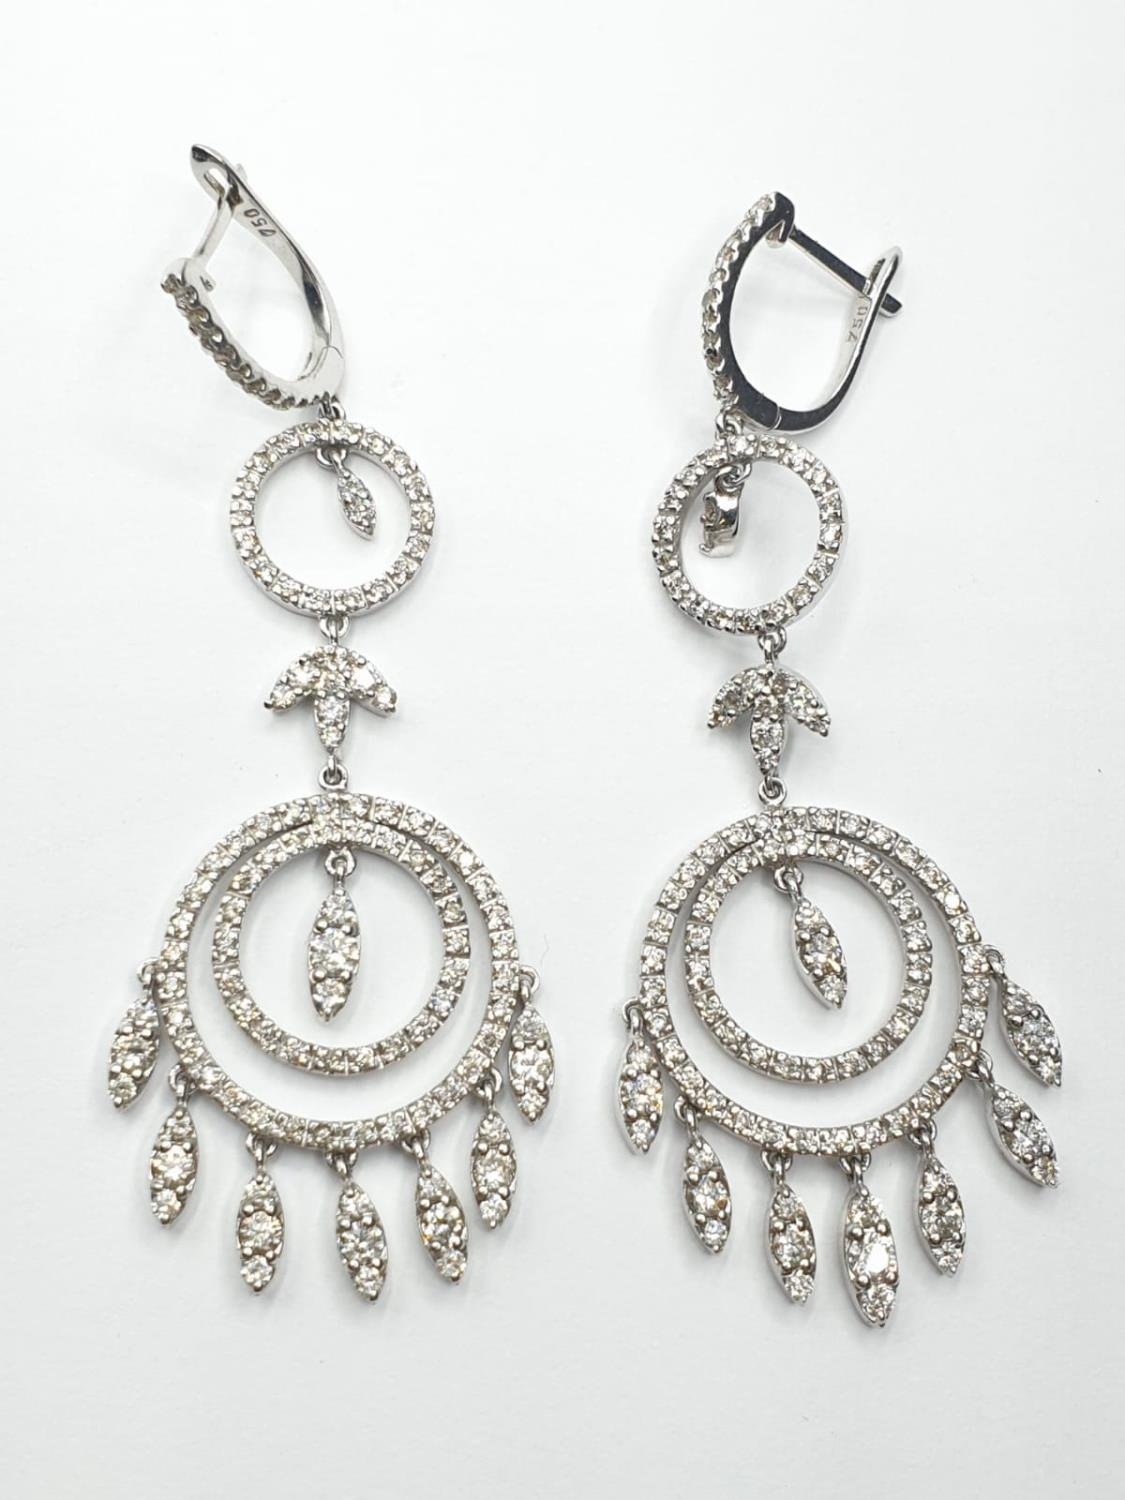 Pair of 18ct white gold and diamond drop earrings in the shape of dream catchers, weight 15.82g